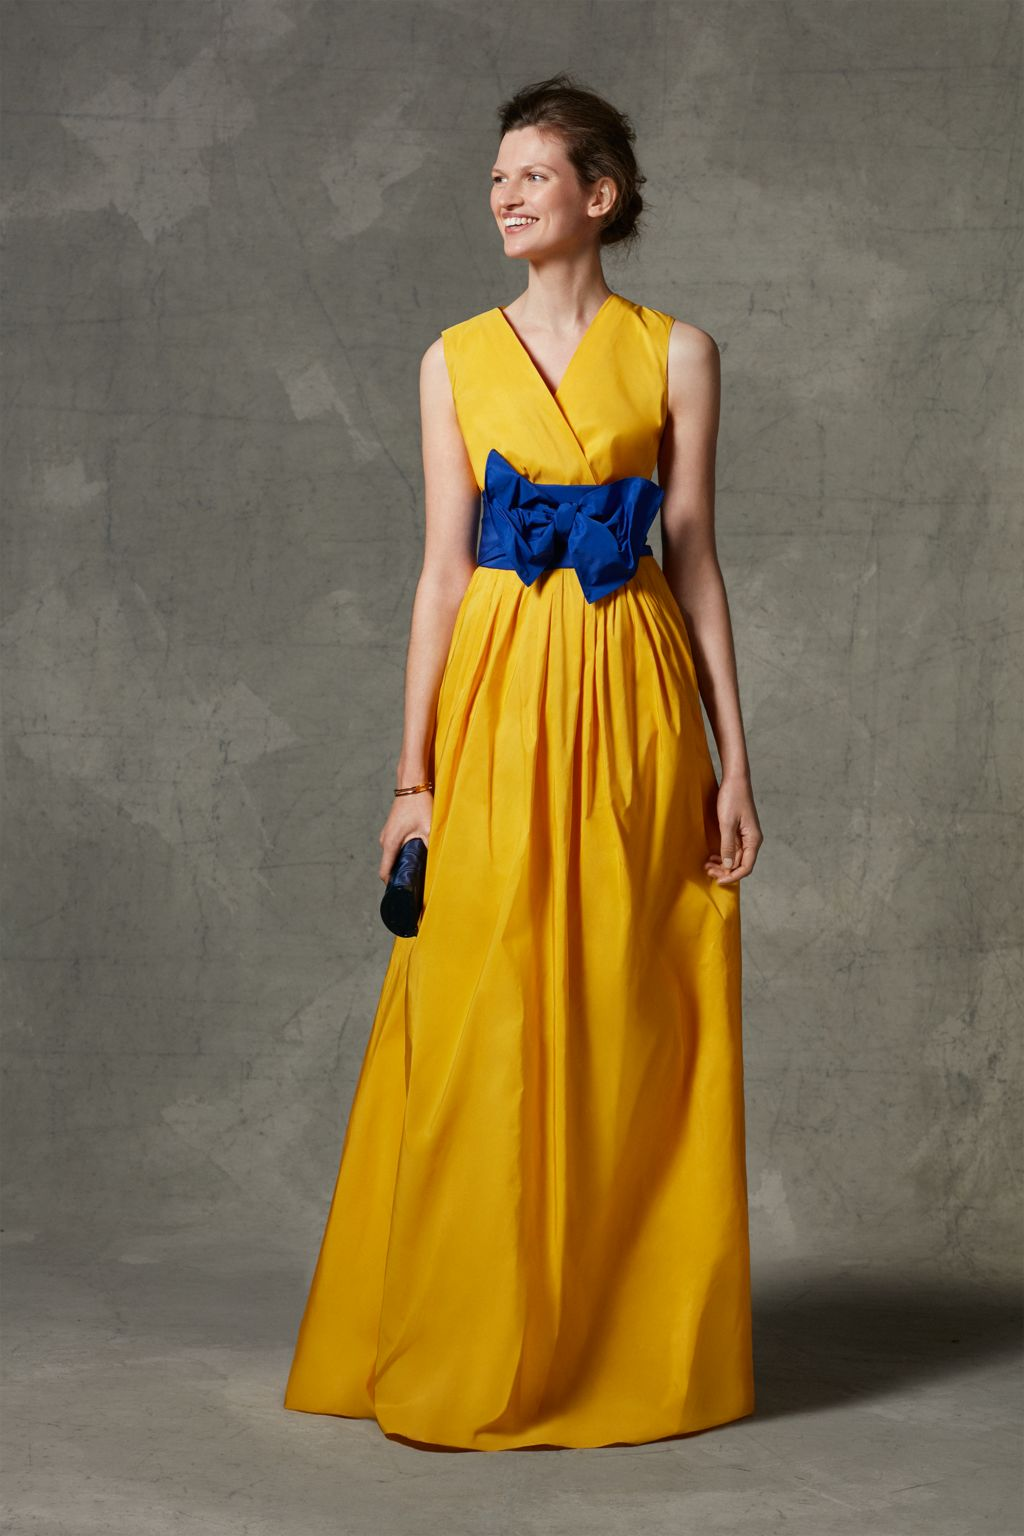 Taffeta dress with bow